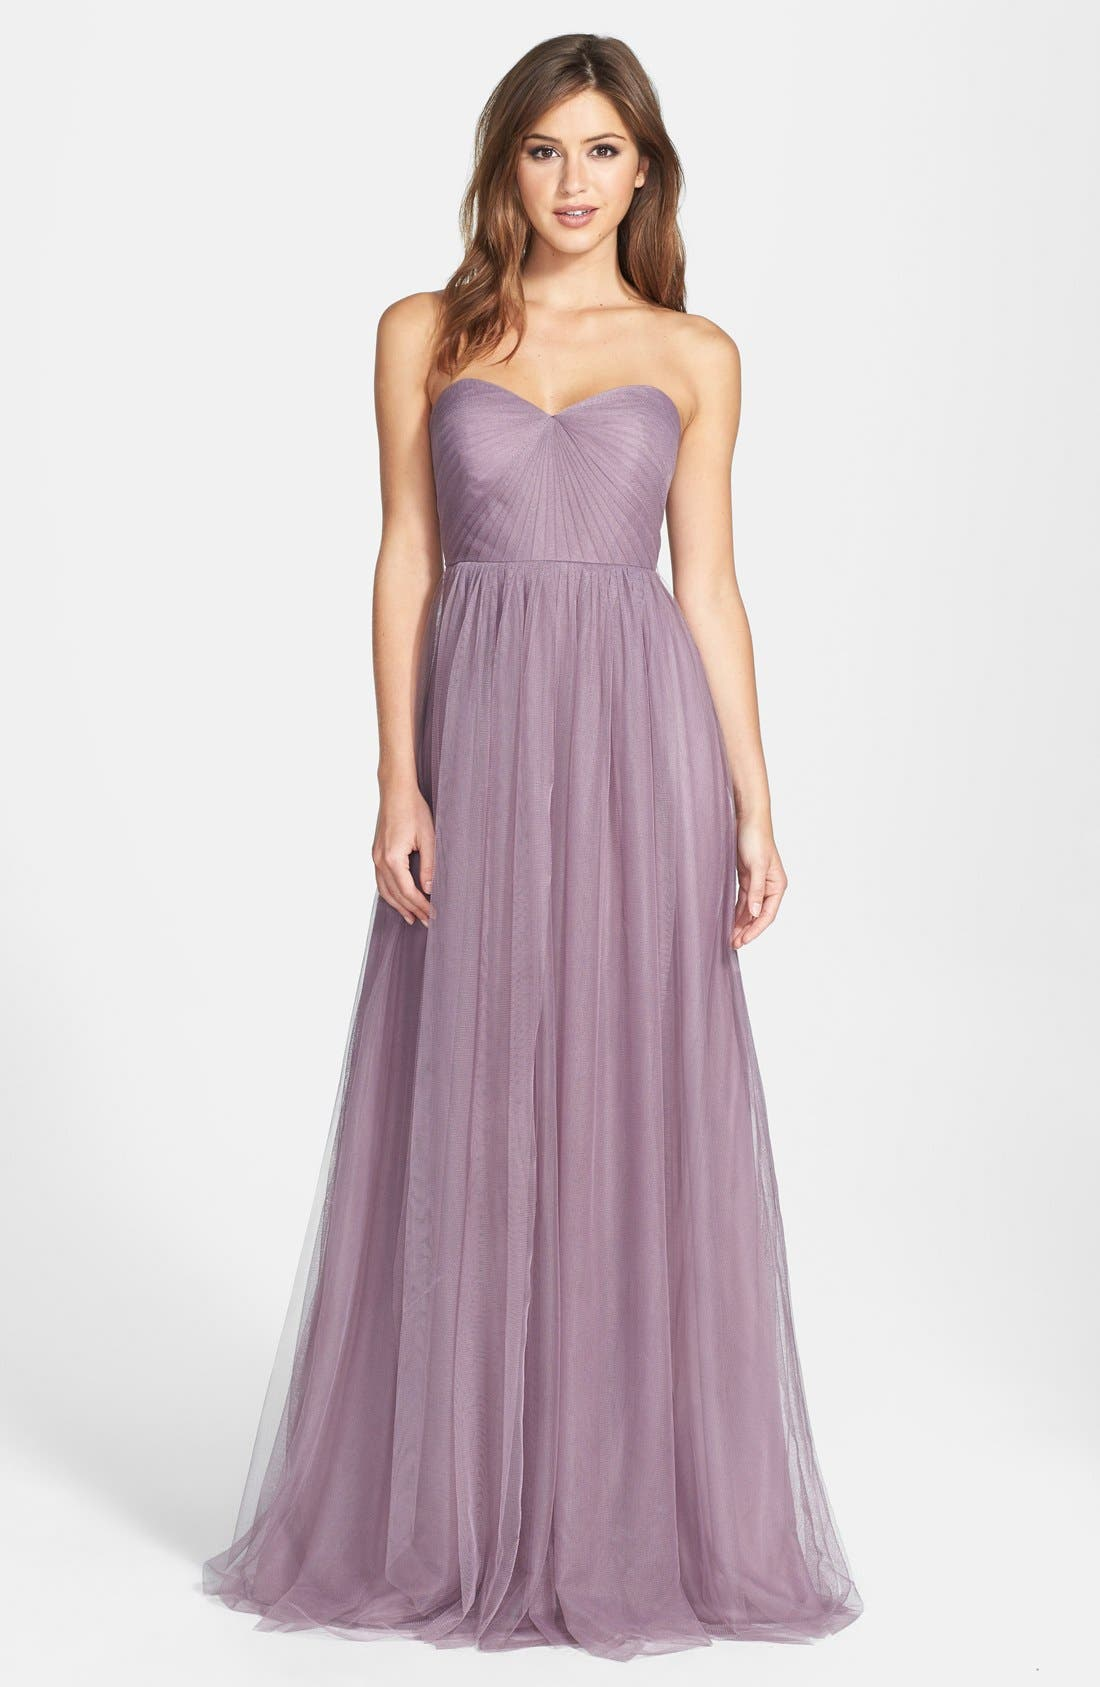 Annabelle Convertible Tulle Column Dress,                             Main thumbnail 8, color,